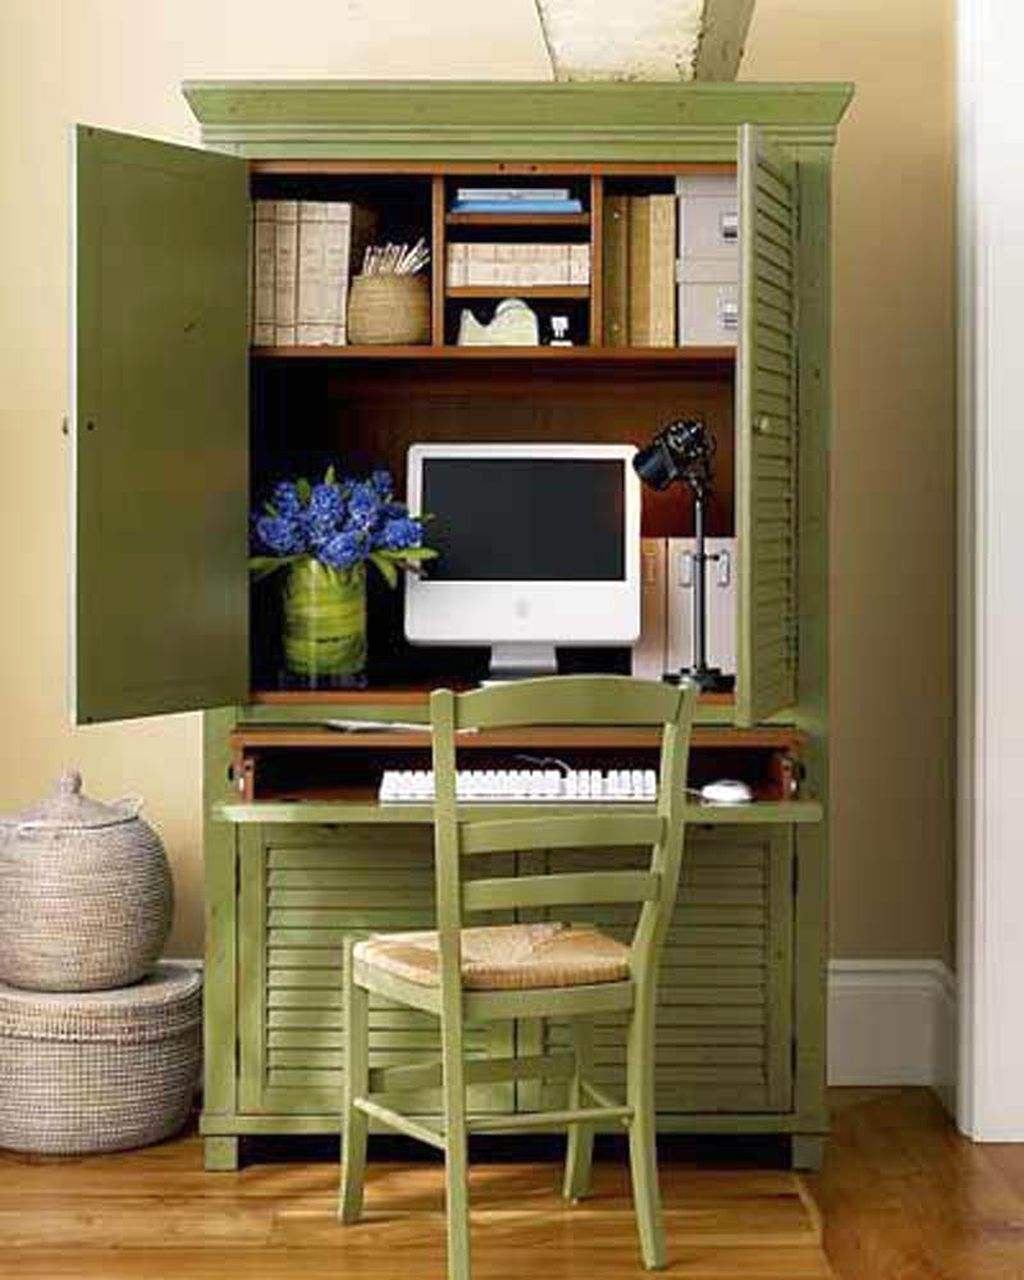 Green cupboard home office design ideas for small spaces Small space design ideas